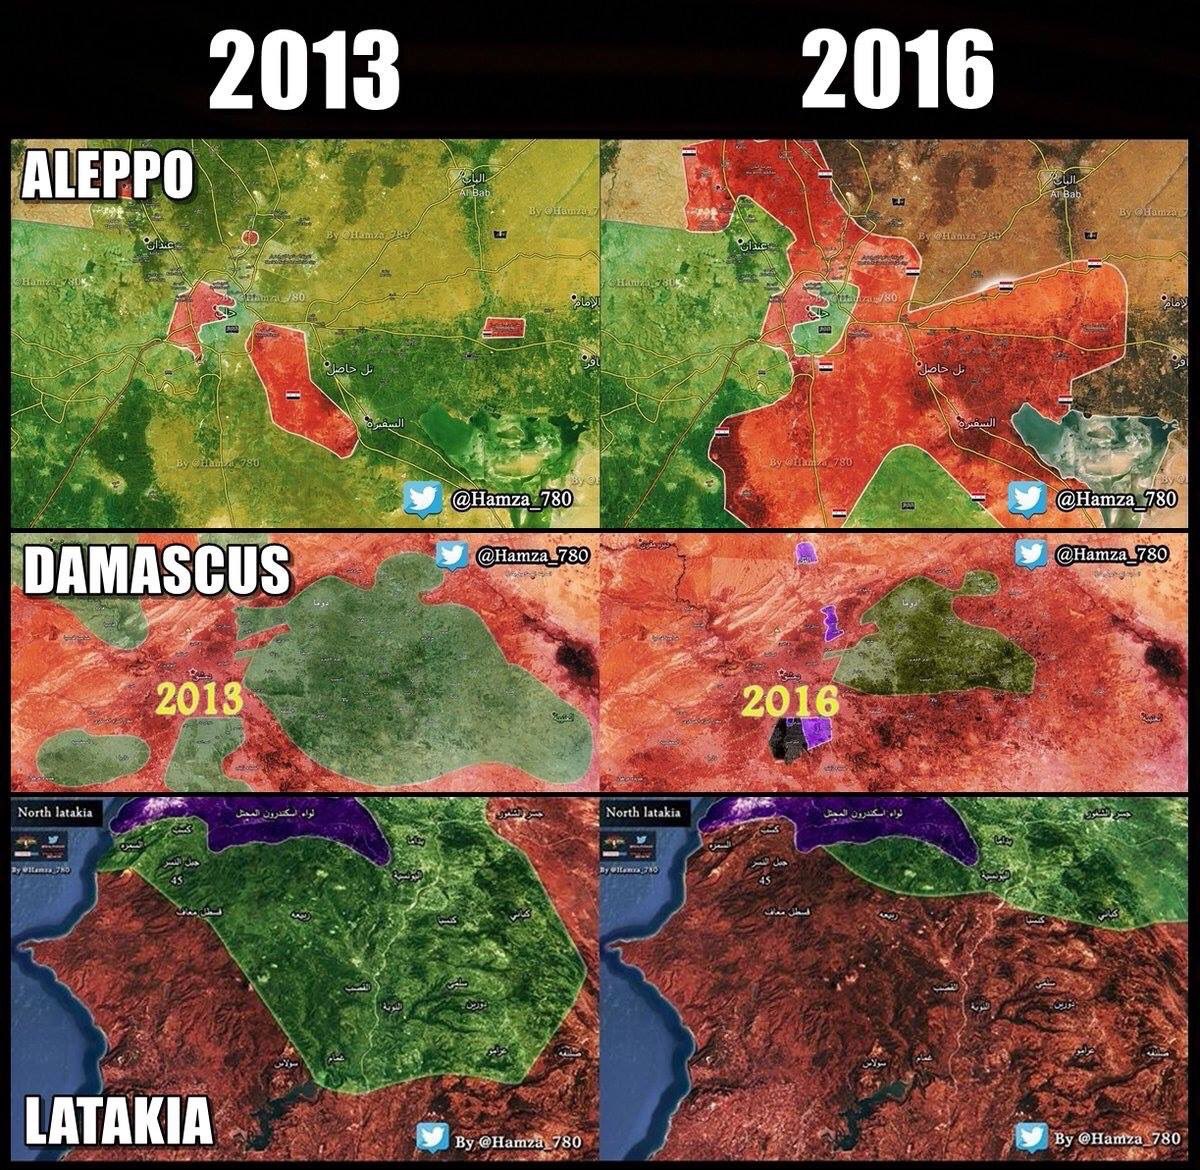 Changes from 2013 to 2016 in Aleppo